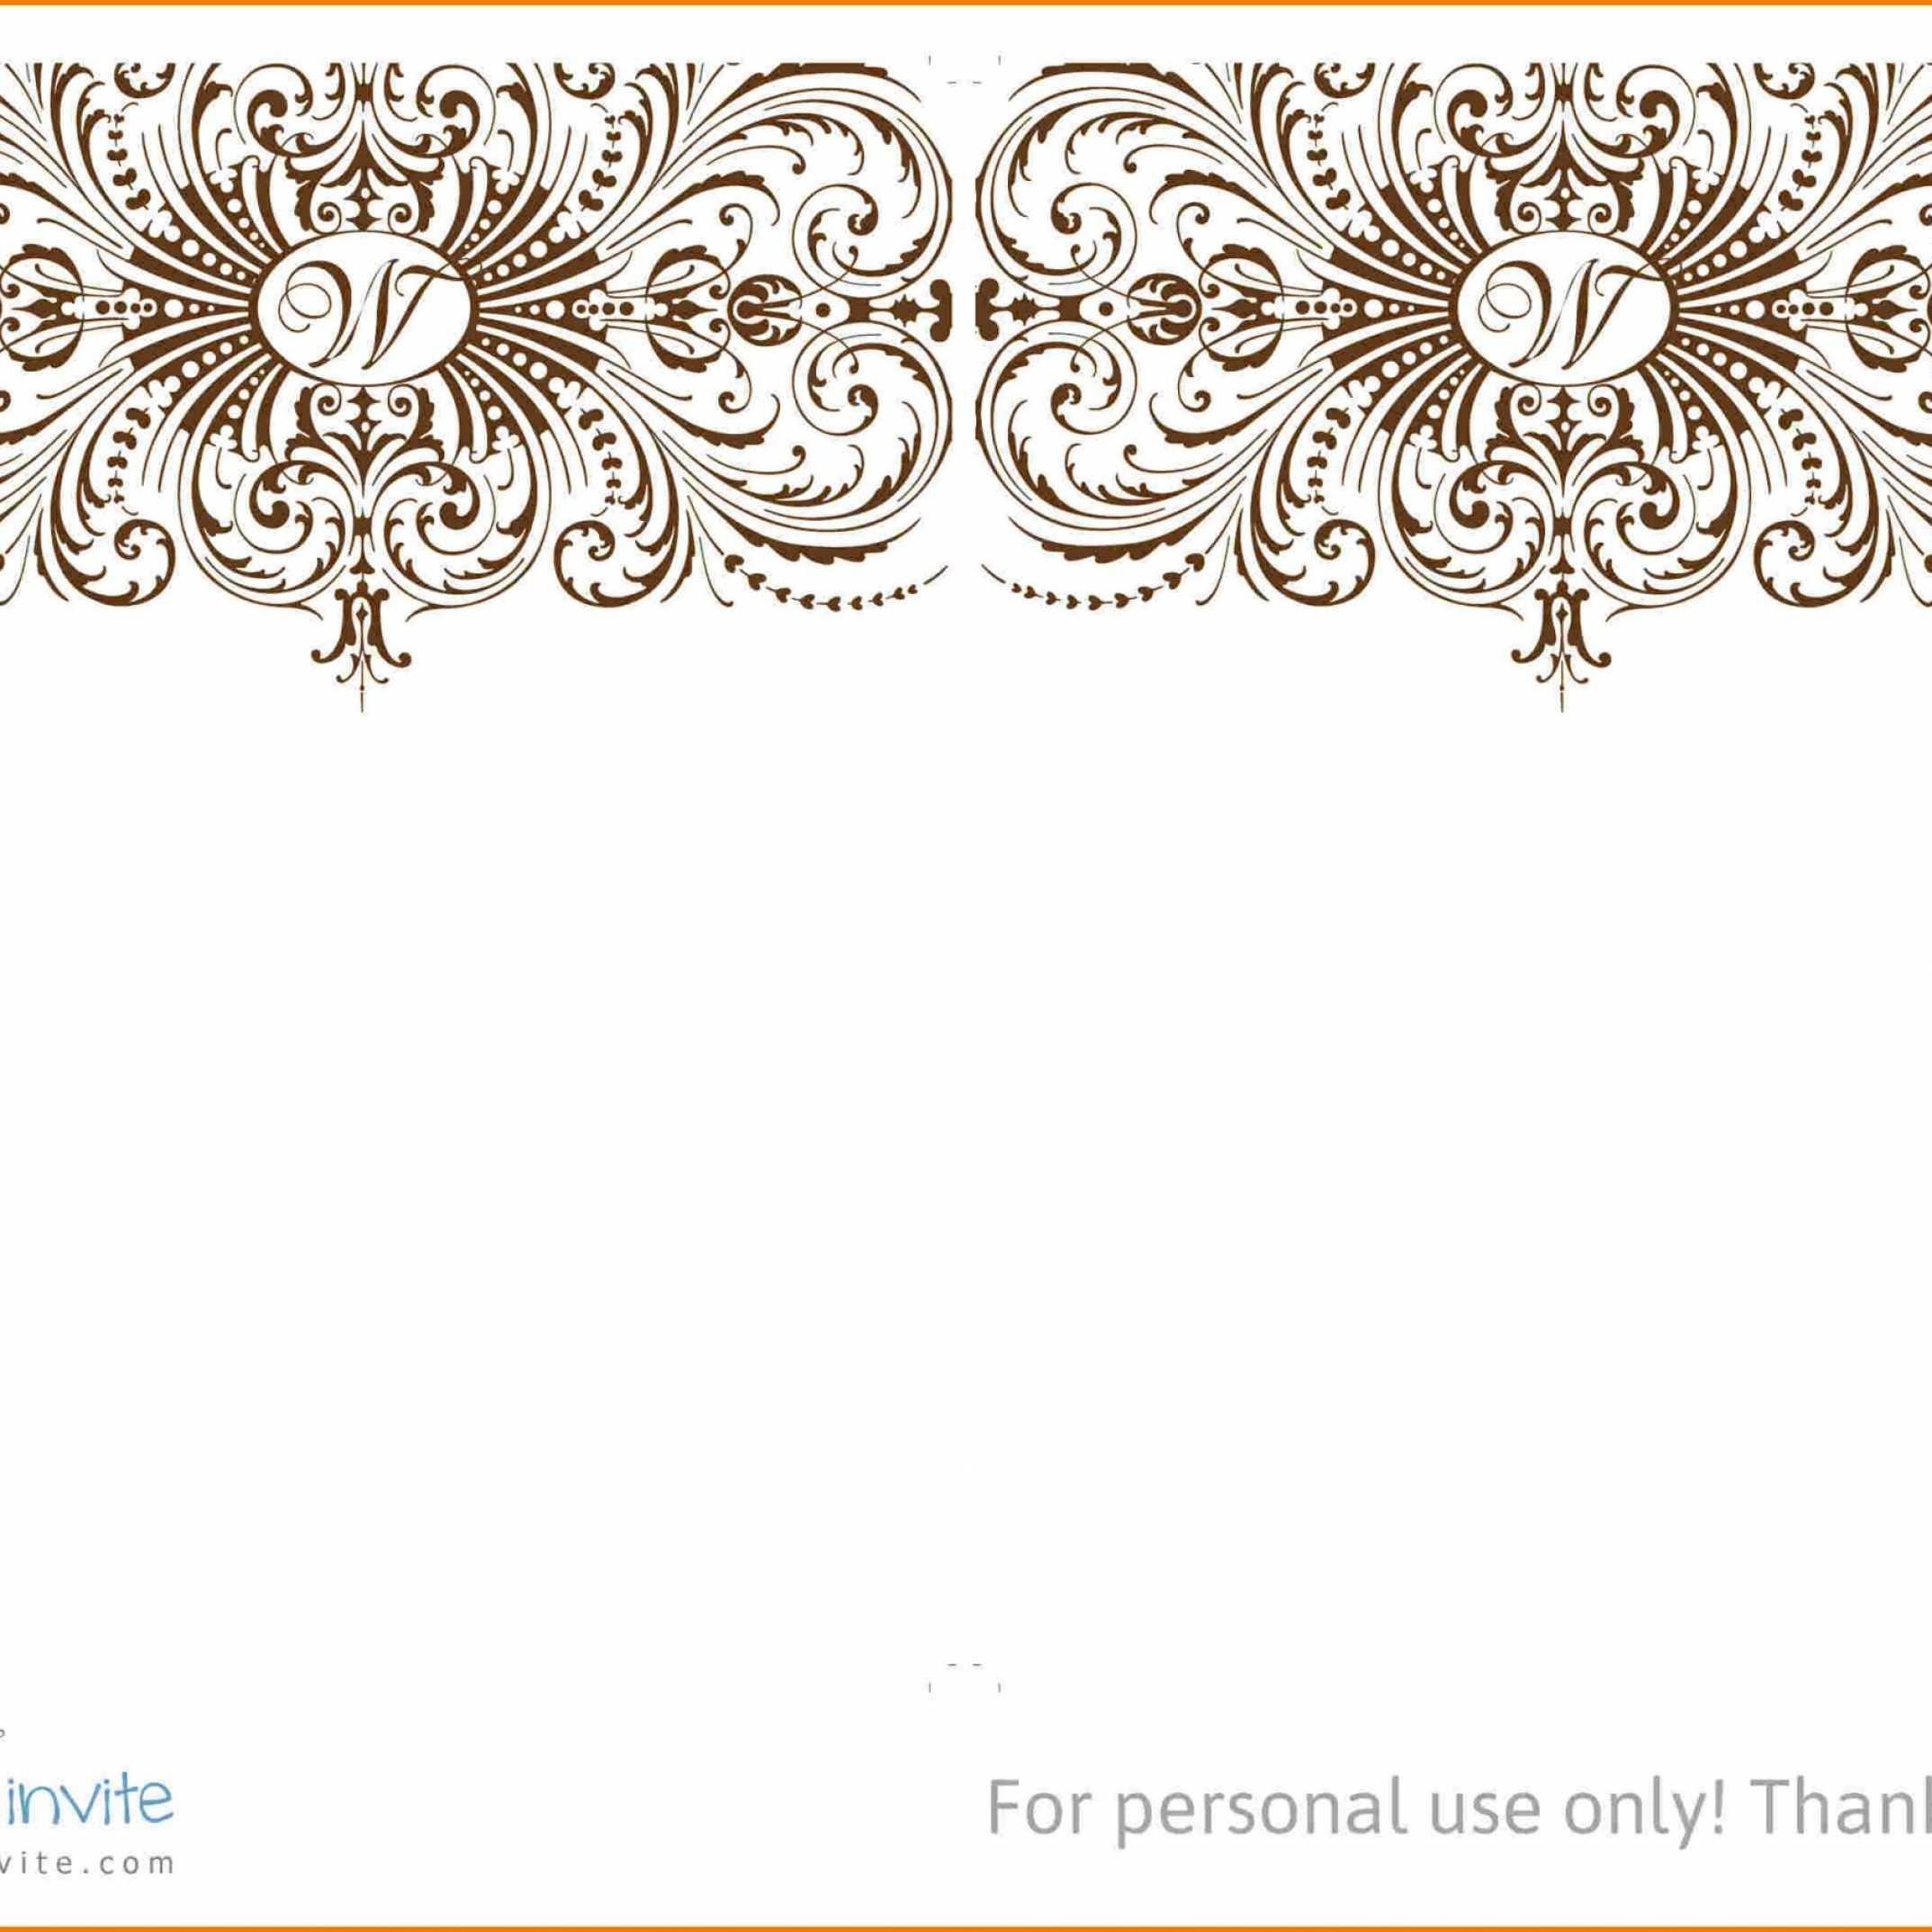 4x6 Wedding Invitation Template Free